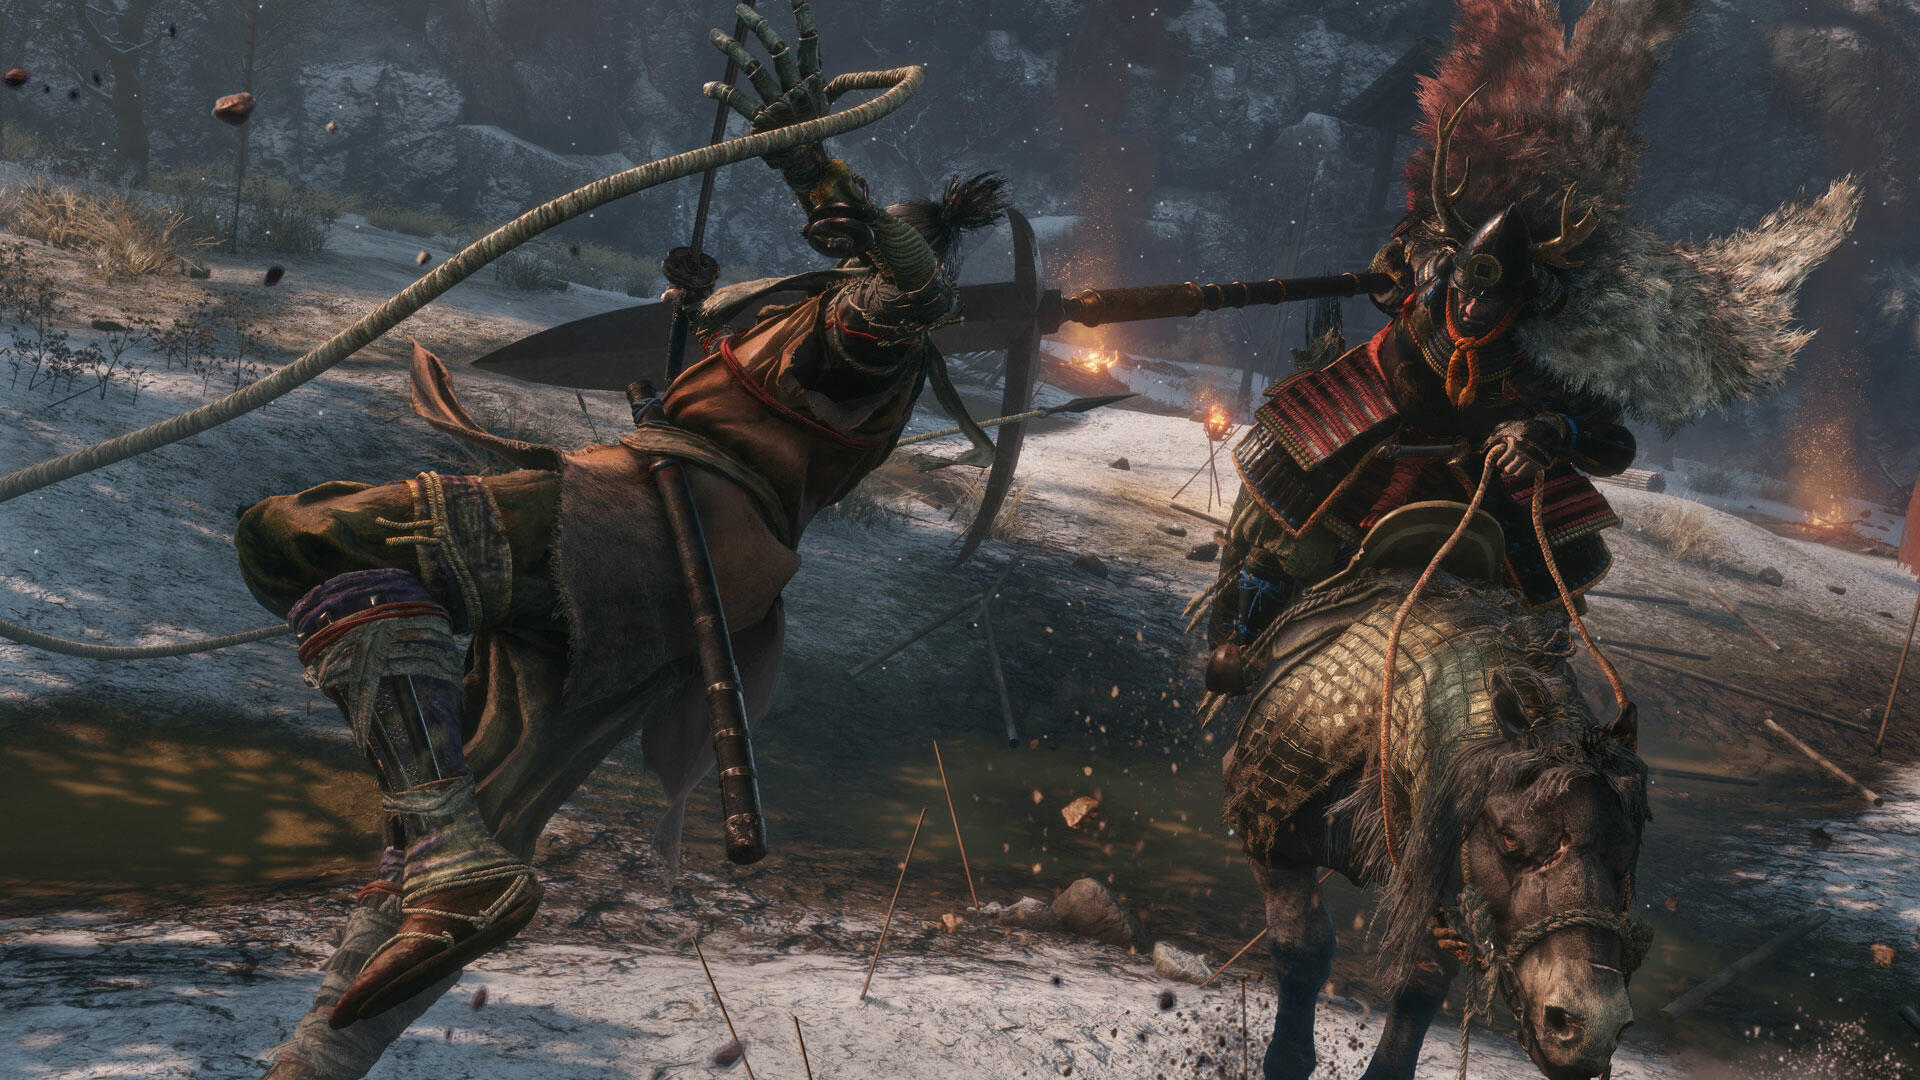 Games Done Quick 2020.The Lineup For Awesome Games Done Quick 2020 Includes Sekiro